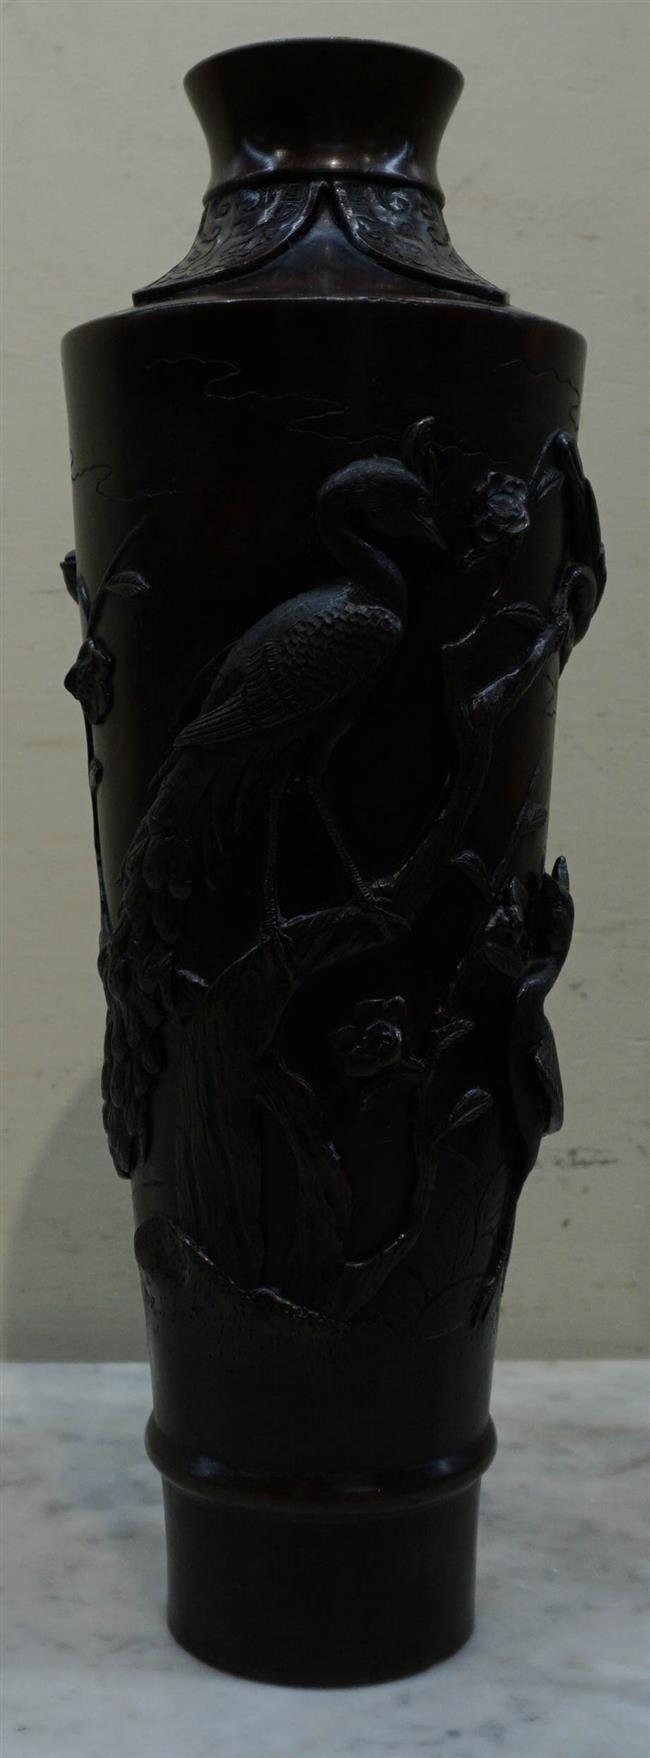 Japanese Bronze Vase, Overall Height 14.5 Inches